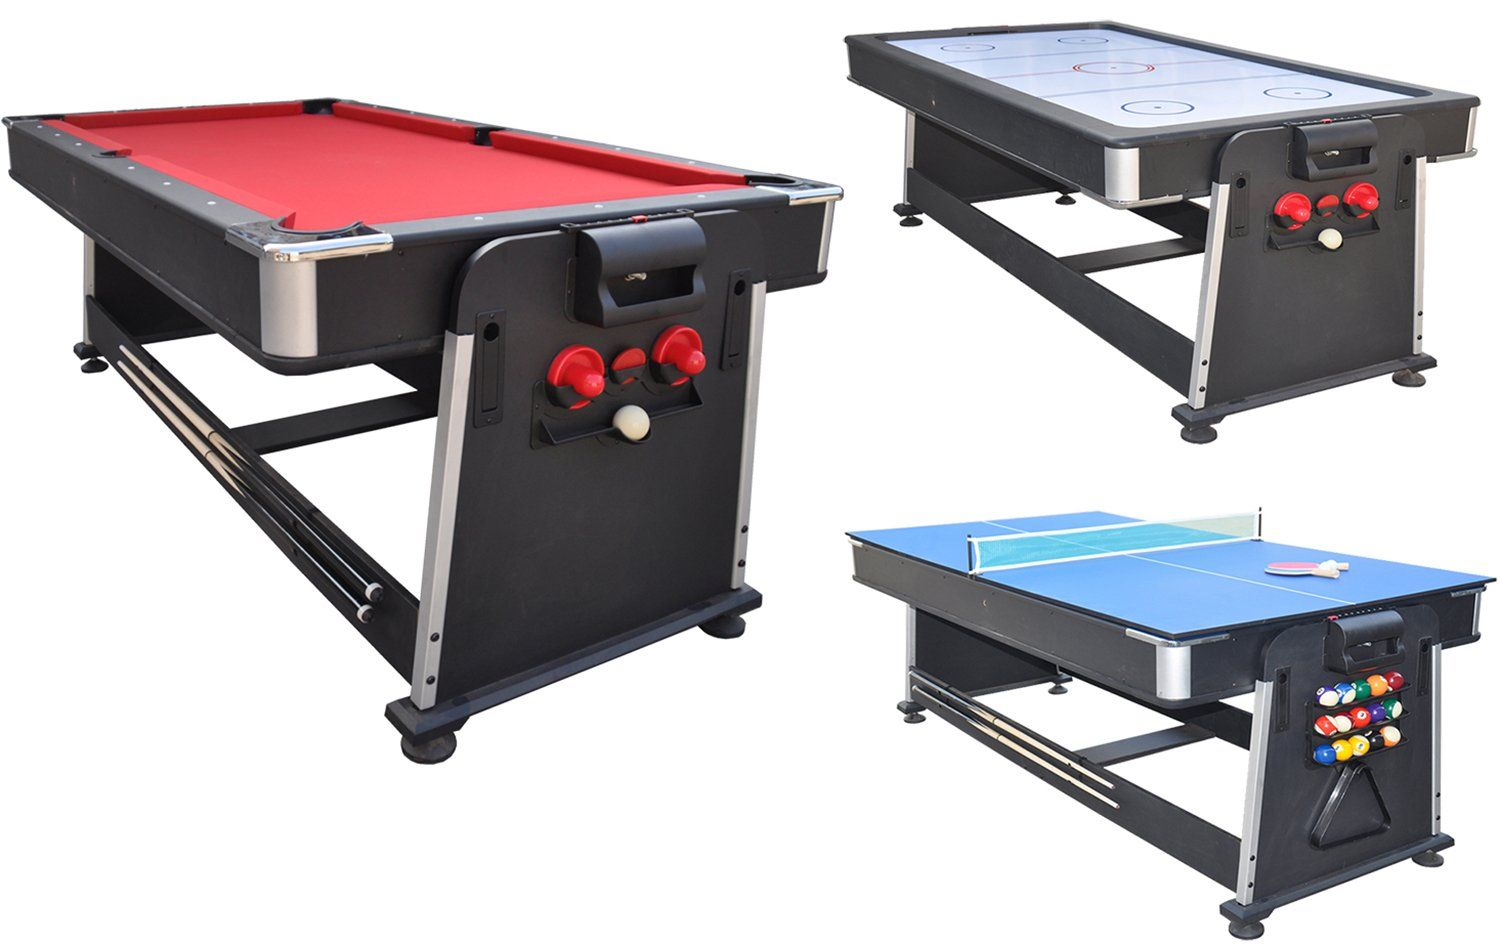 Strikeworth 7 Foot Multi Games Table | Liberty Games